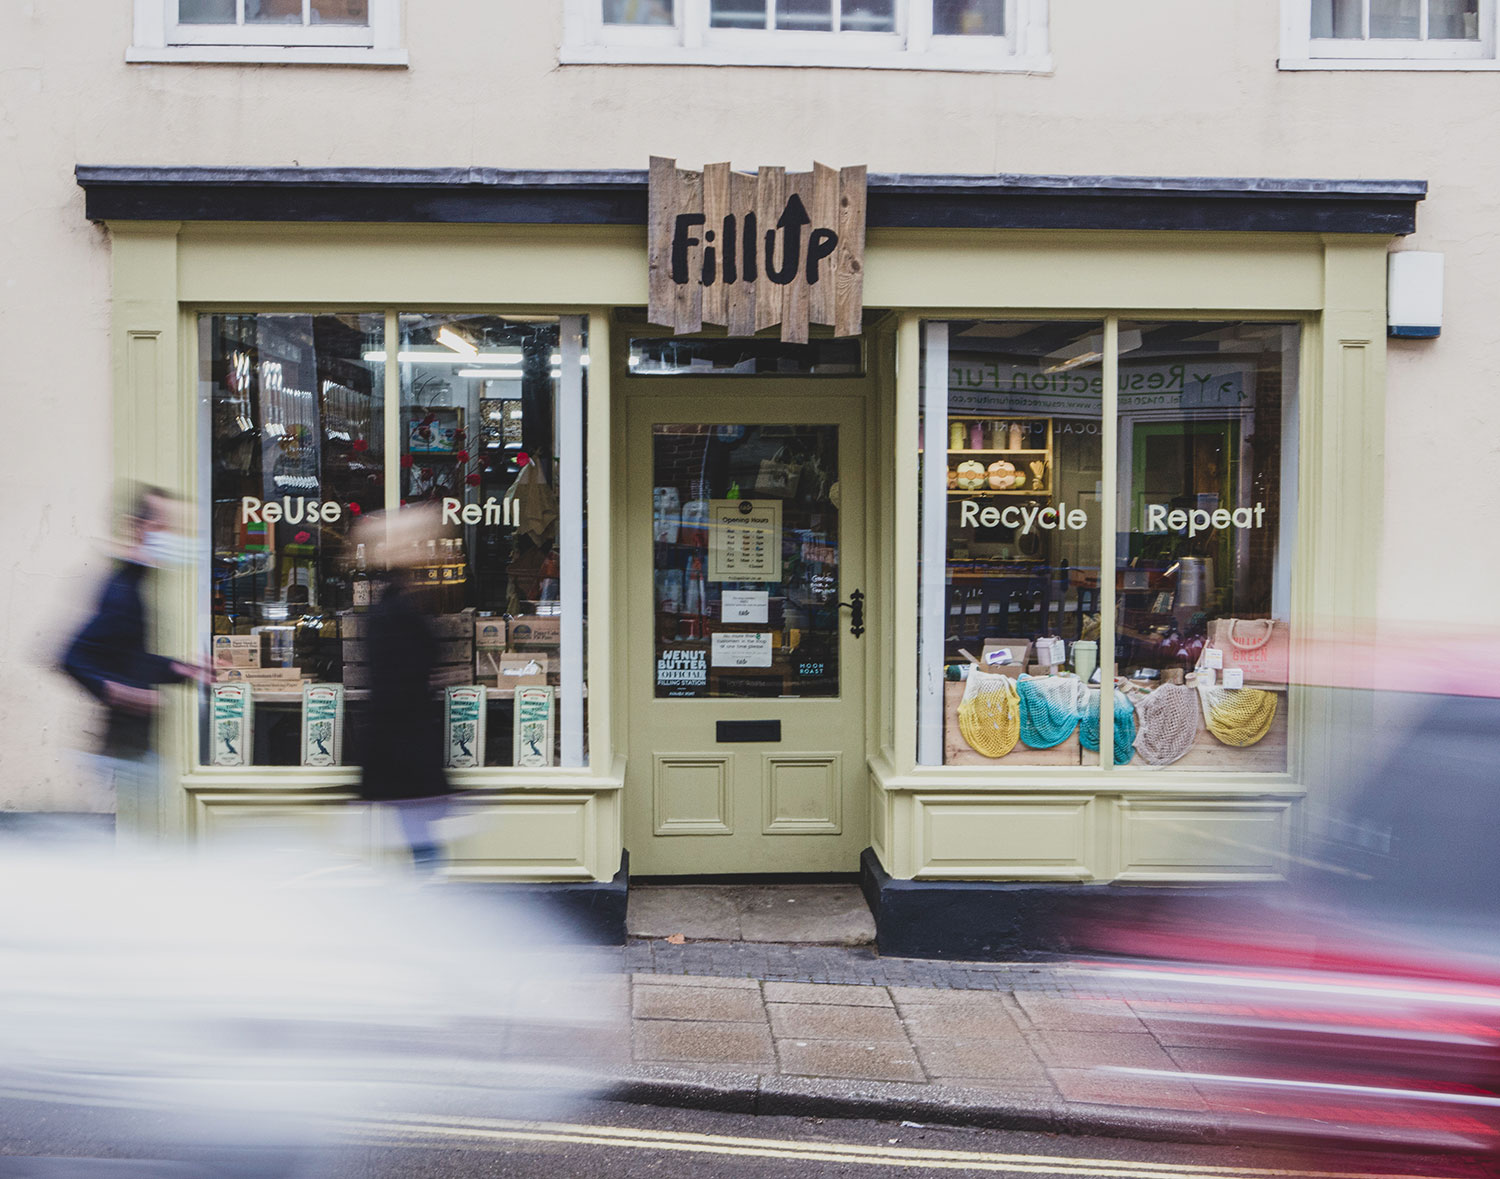 FillUp Shop front. Reuse, Refill, Recycle, Repeat